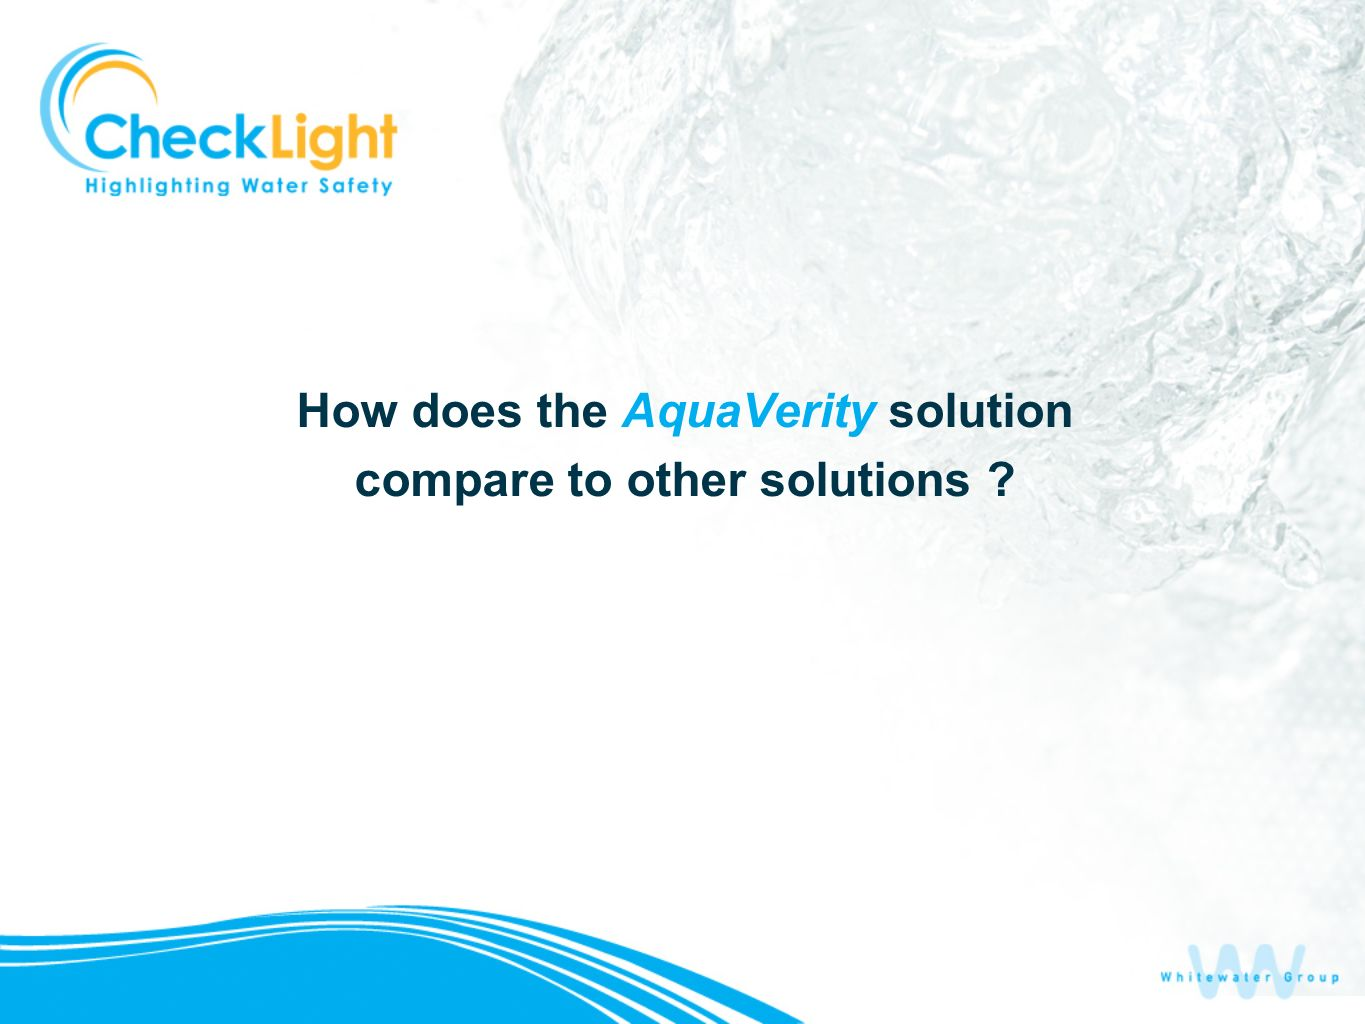 How does the AquaVerity solution compare to other solutions